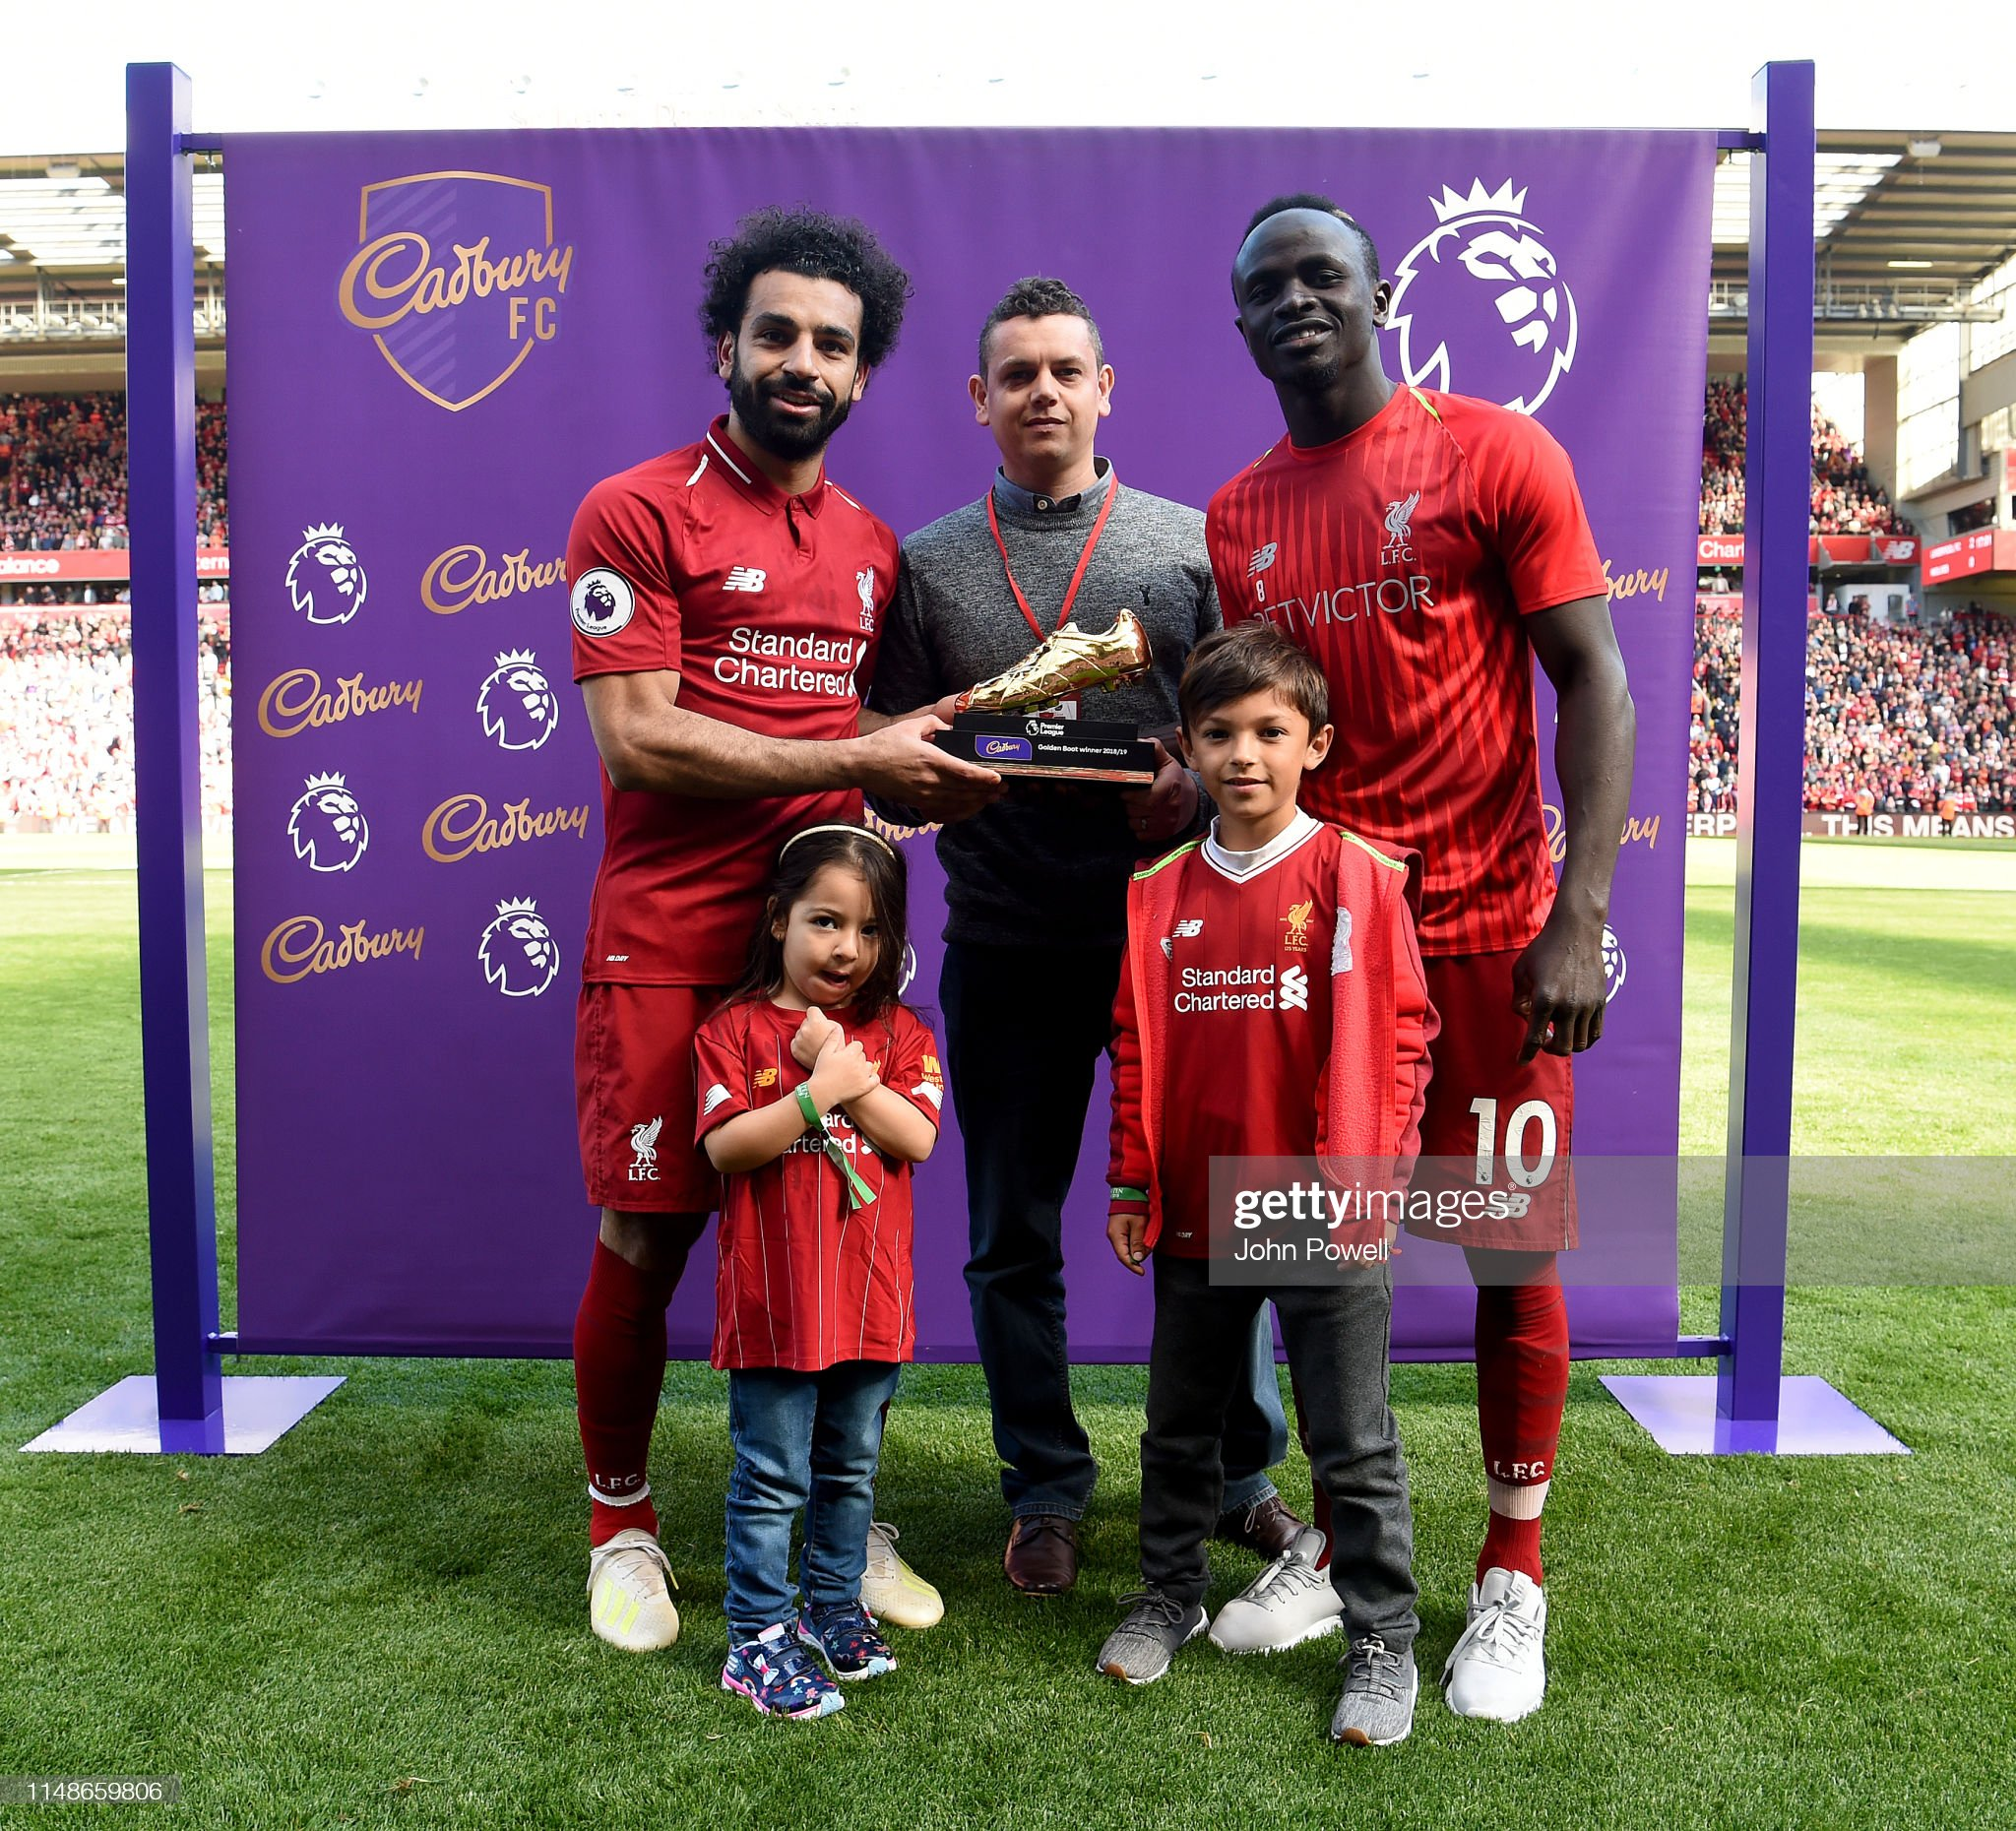 ¿Cuánto mide Sadio Mané? - Real height Mohamed-salah-and-sadio-mane-of-liverpool-with-the-golden-boot-at-the-picture-id1148659806?s=2048x2048